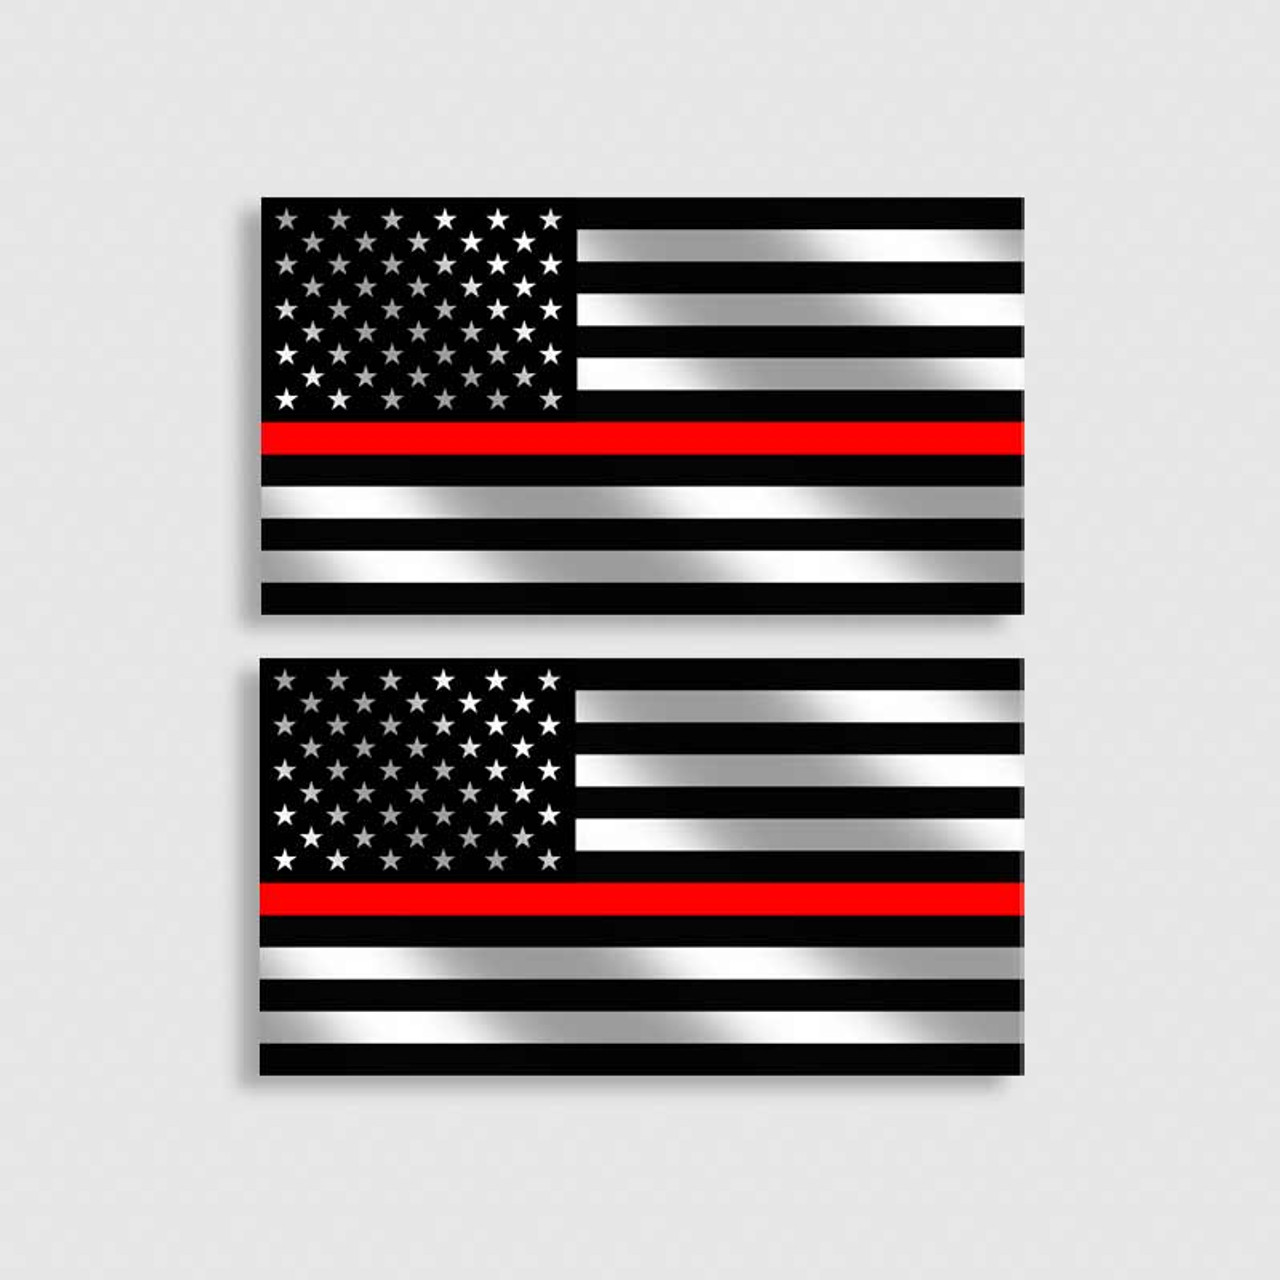 Red Line American Flag >> Firefighter Thin Red Line American Flag Decal Set